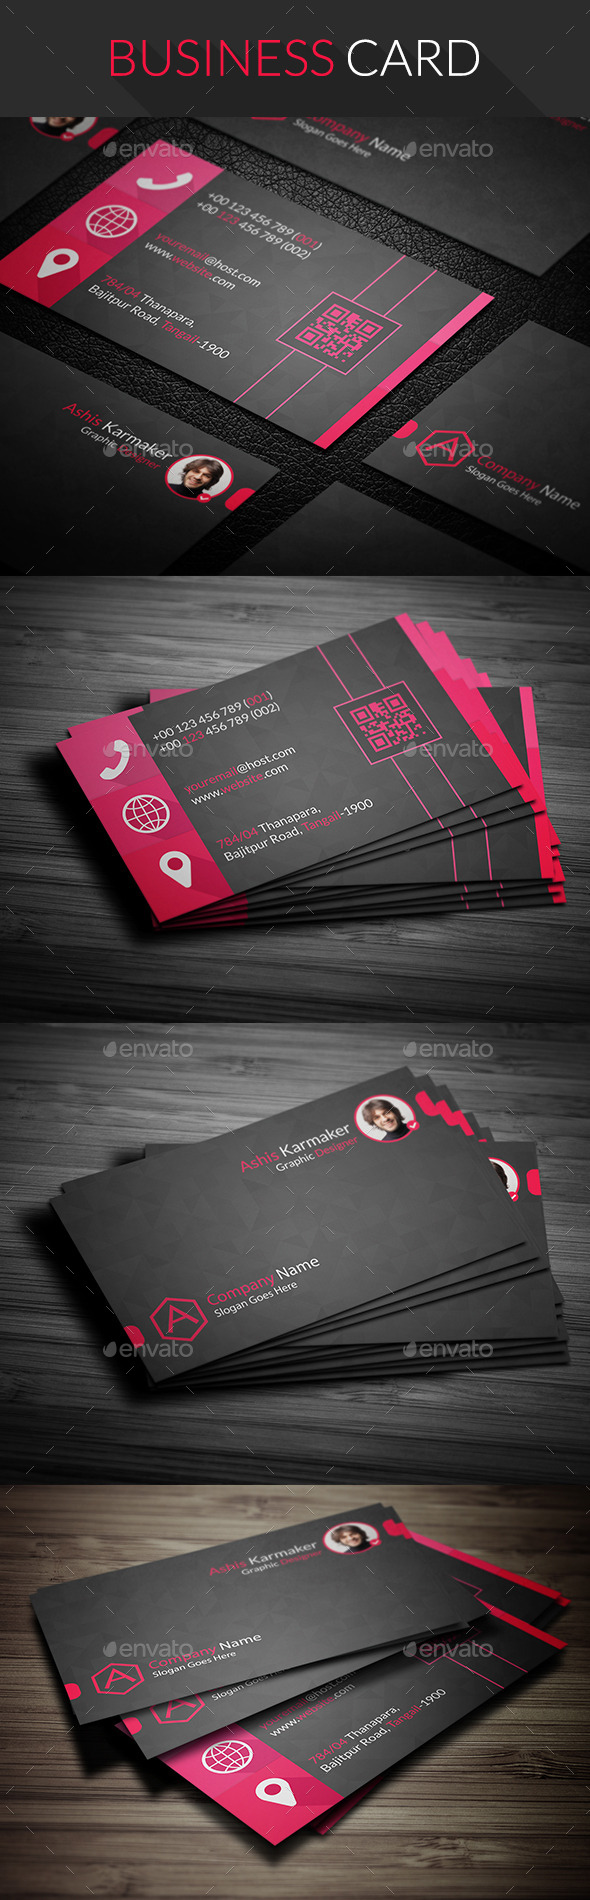 Hope Business Card - Business Cards Print Templates